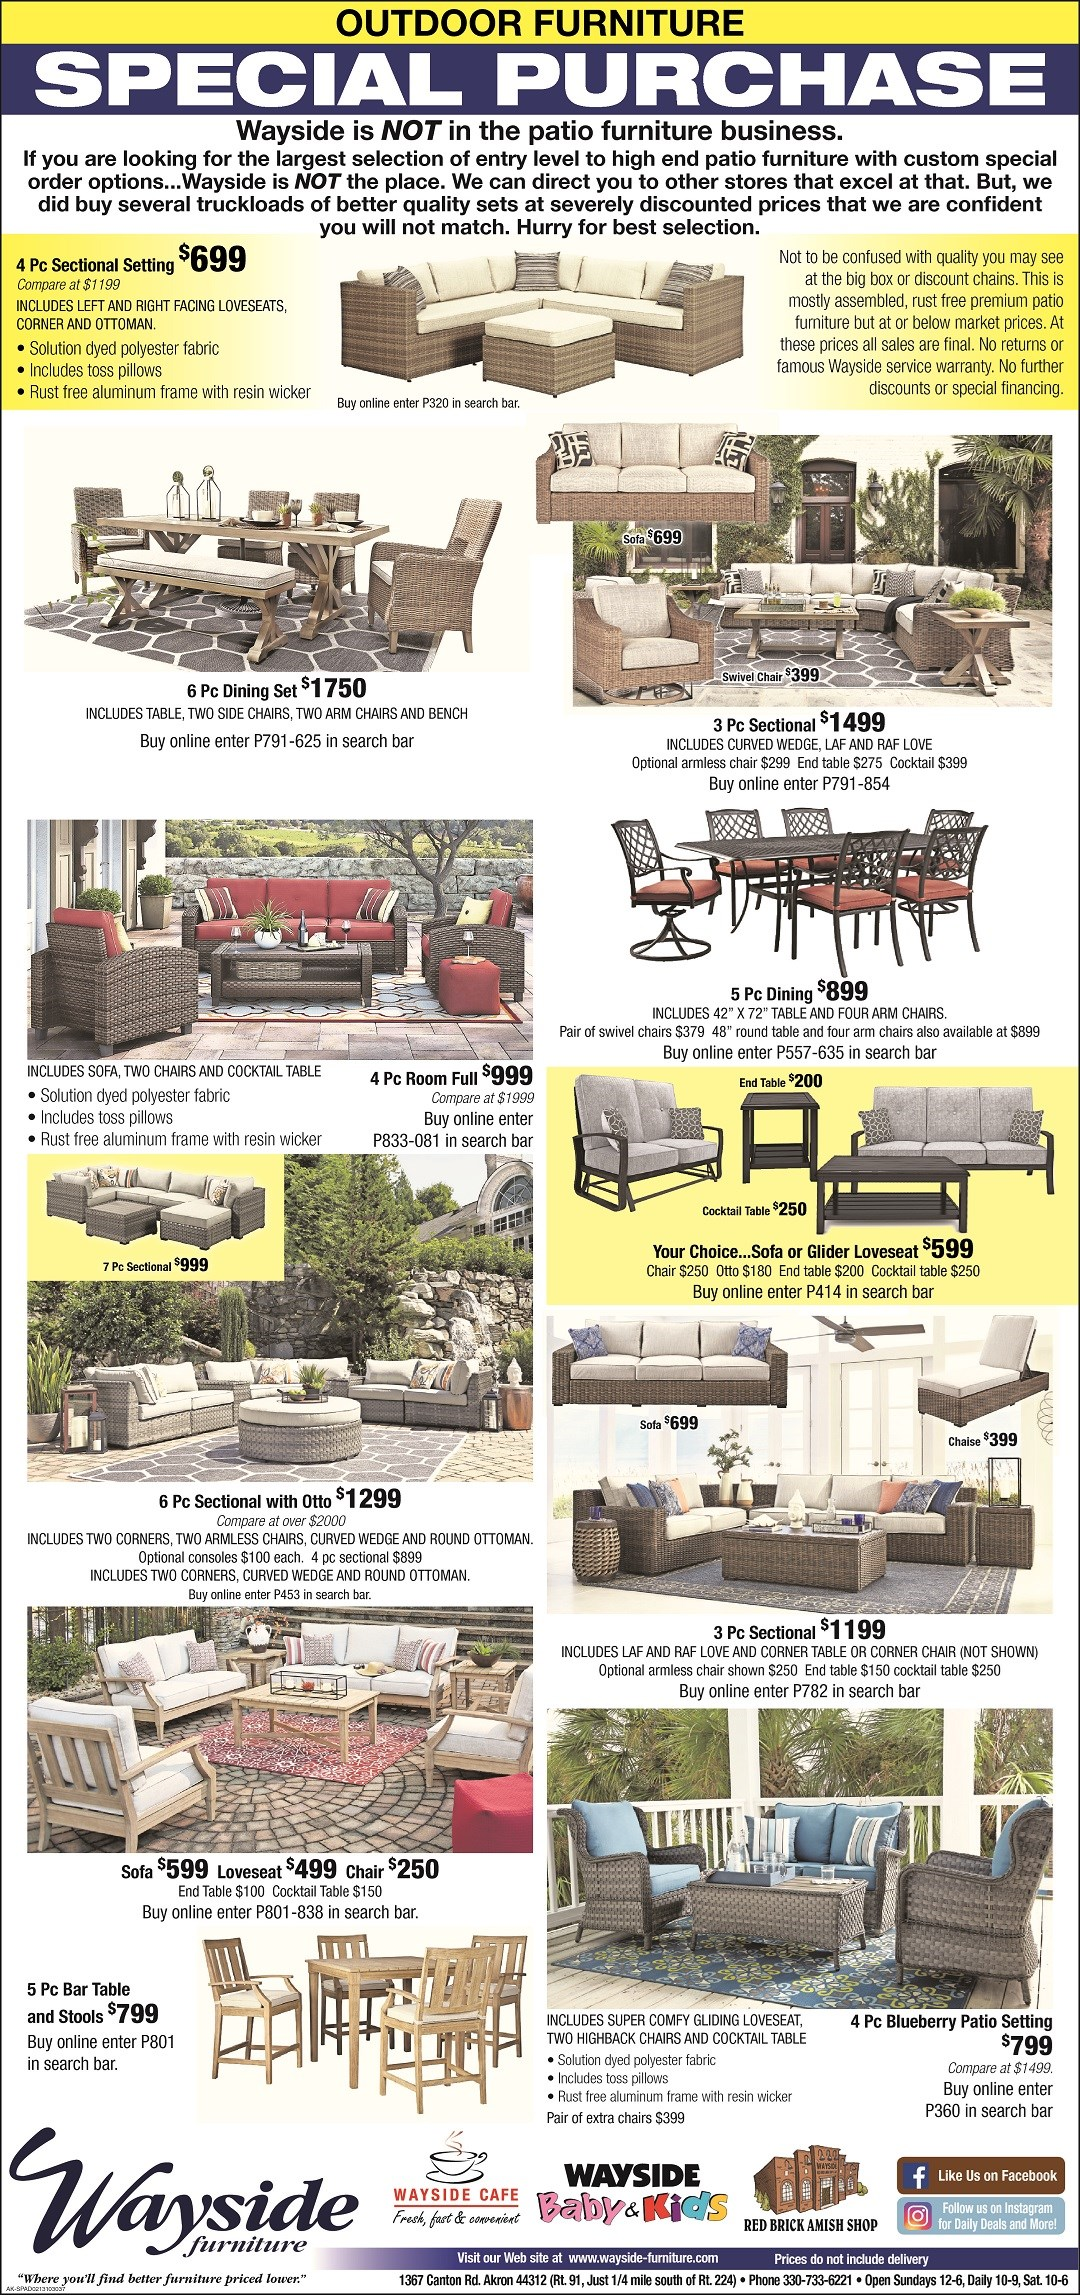 Patio furniture, outdoor furniture, Ashley outdoor furniture,